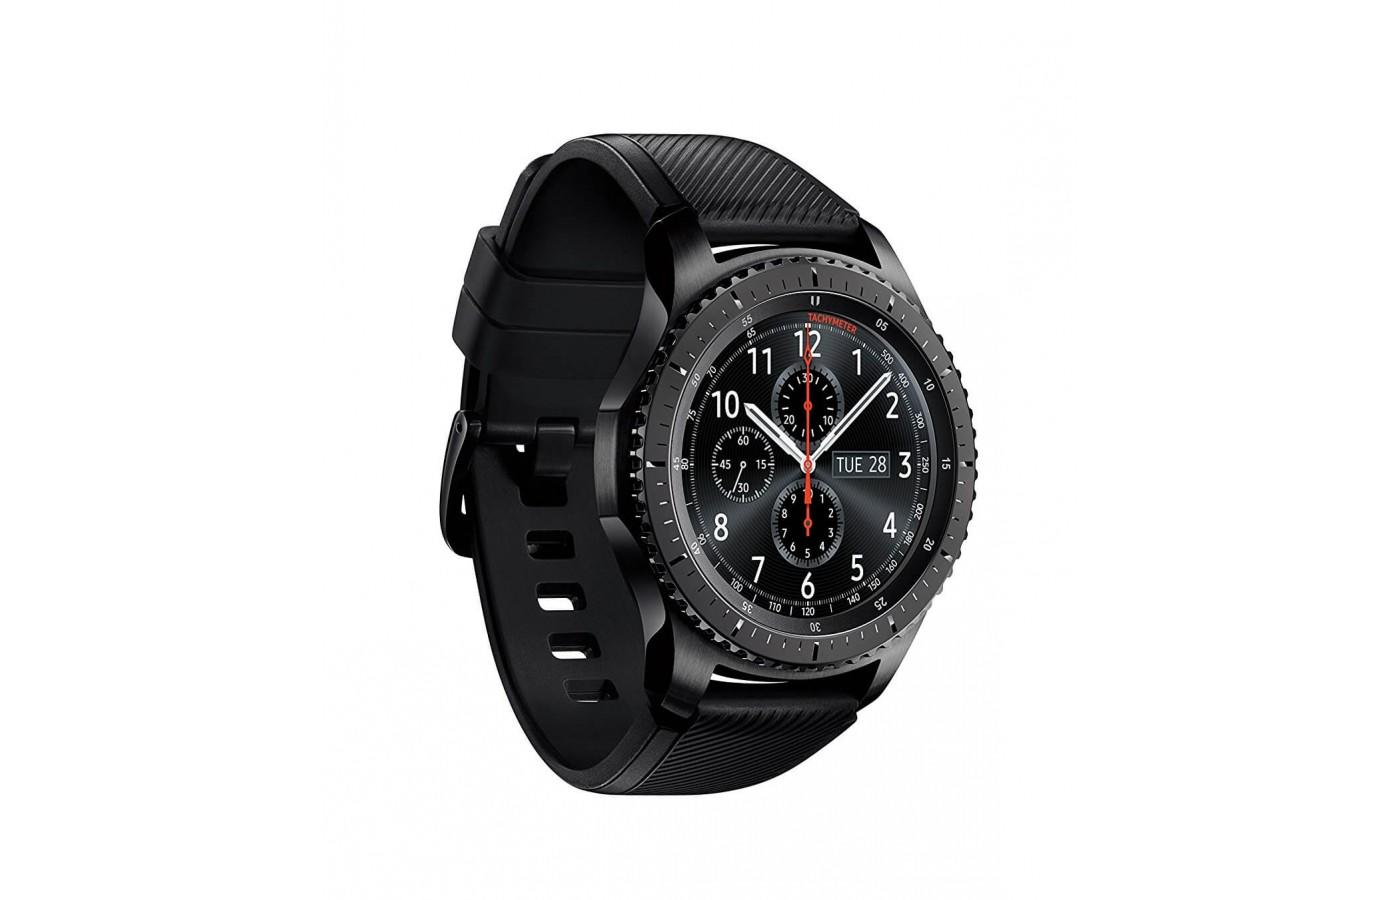 948f10ff852 Samsung Gear S3 Frontier - To Buy or Not in Mar 2019